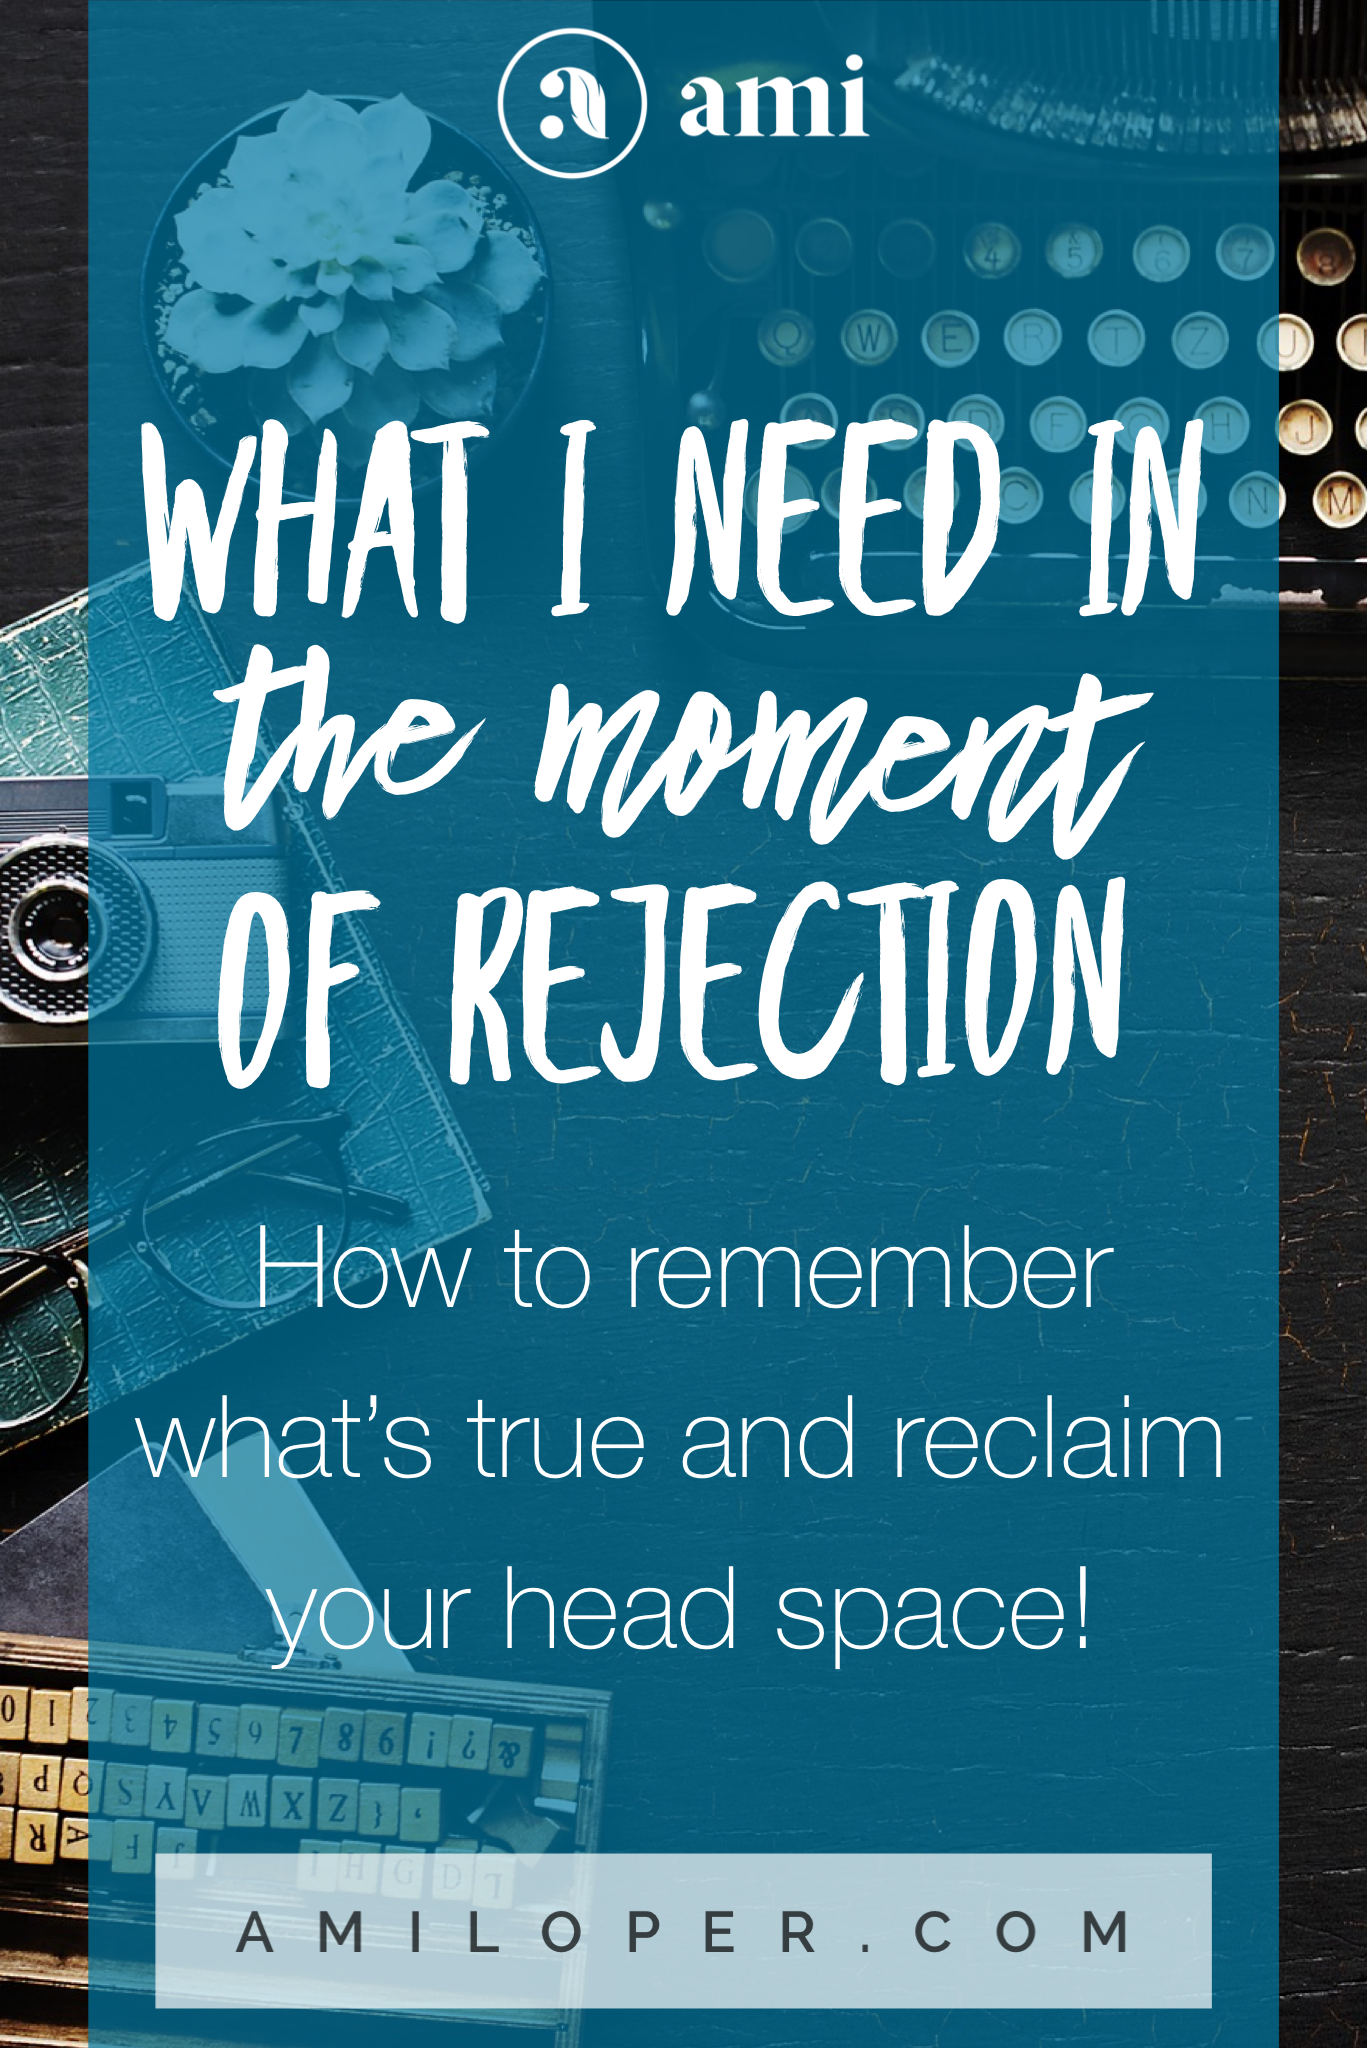 How do I go from knowing the truth beforehand, to actually being able to tap into those truths in the moment of rejection when my emotions cloud over the truth? #Rejection #FightBack #ChristianBlog #Printable